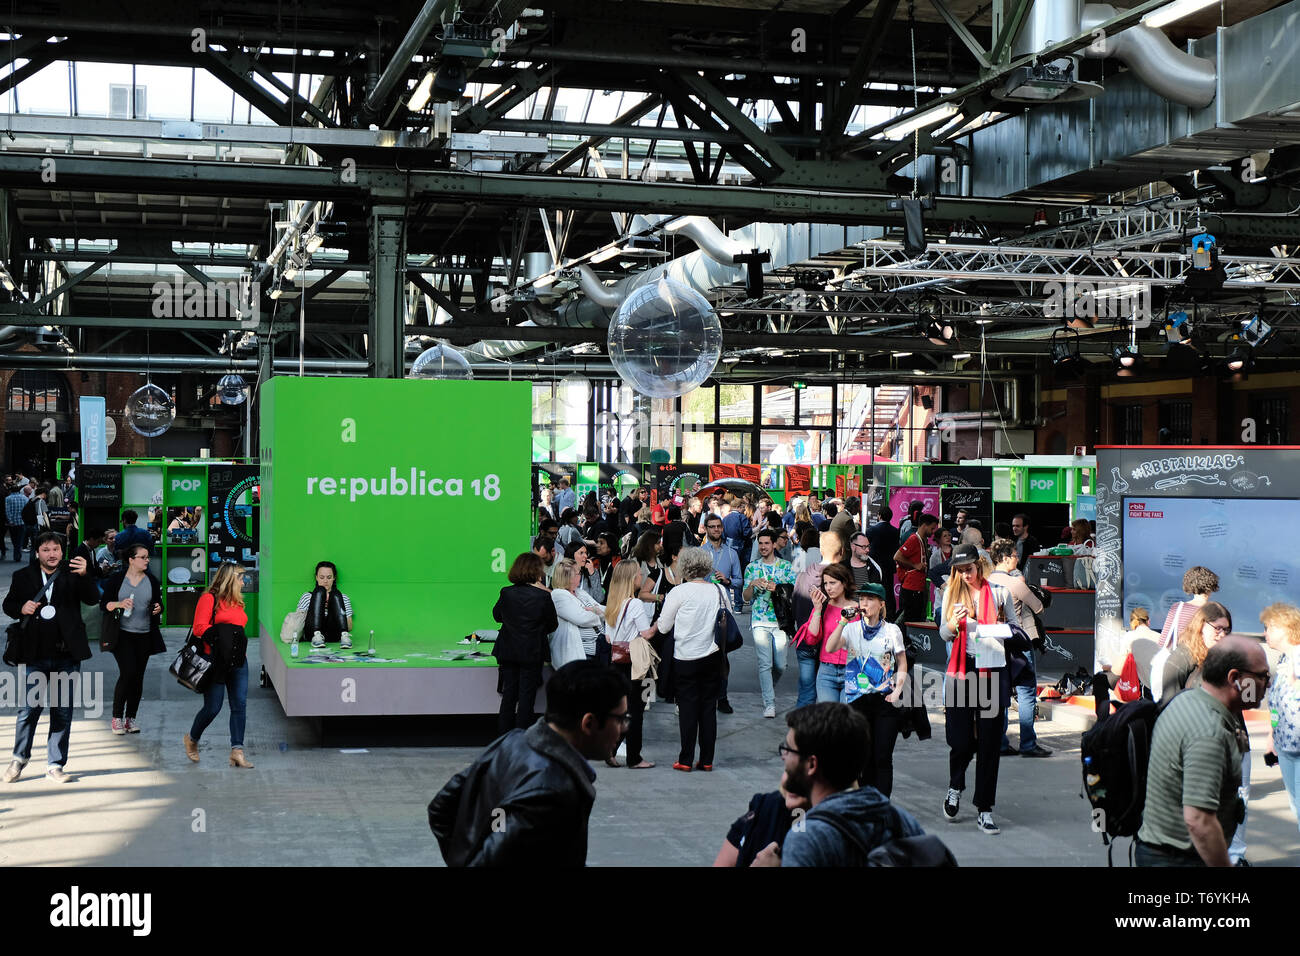 Berlin, Germany - May 3, 2018: View on the entrance hall of re:publica 2018 with visitors and many small booths. re:publica is a conference about Web  Stock Photo